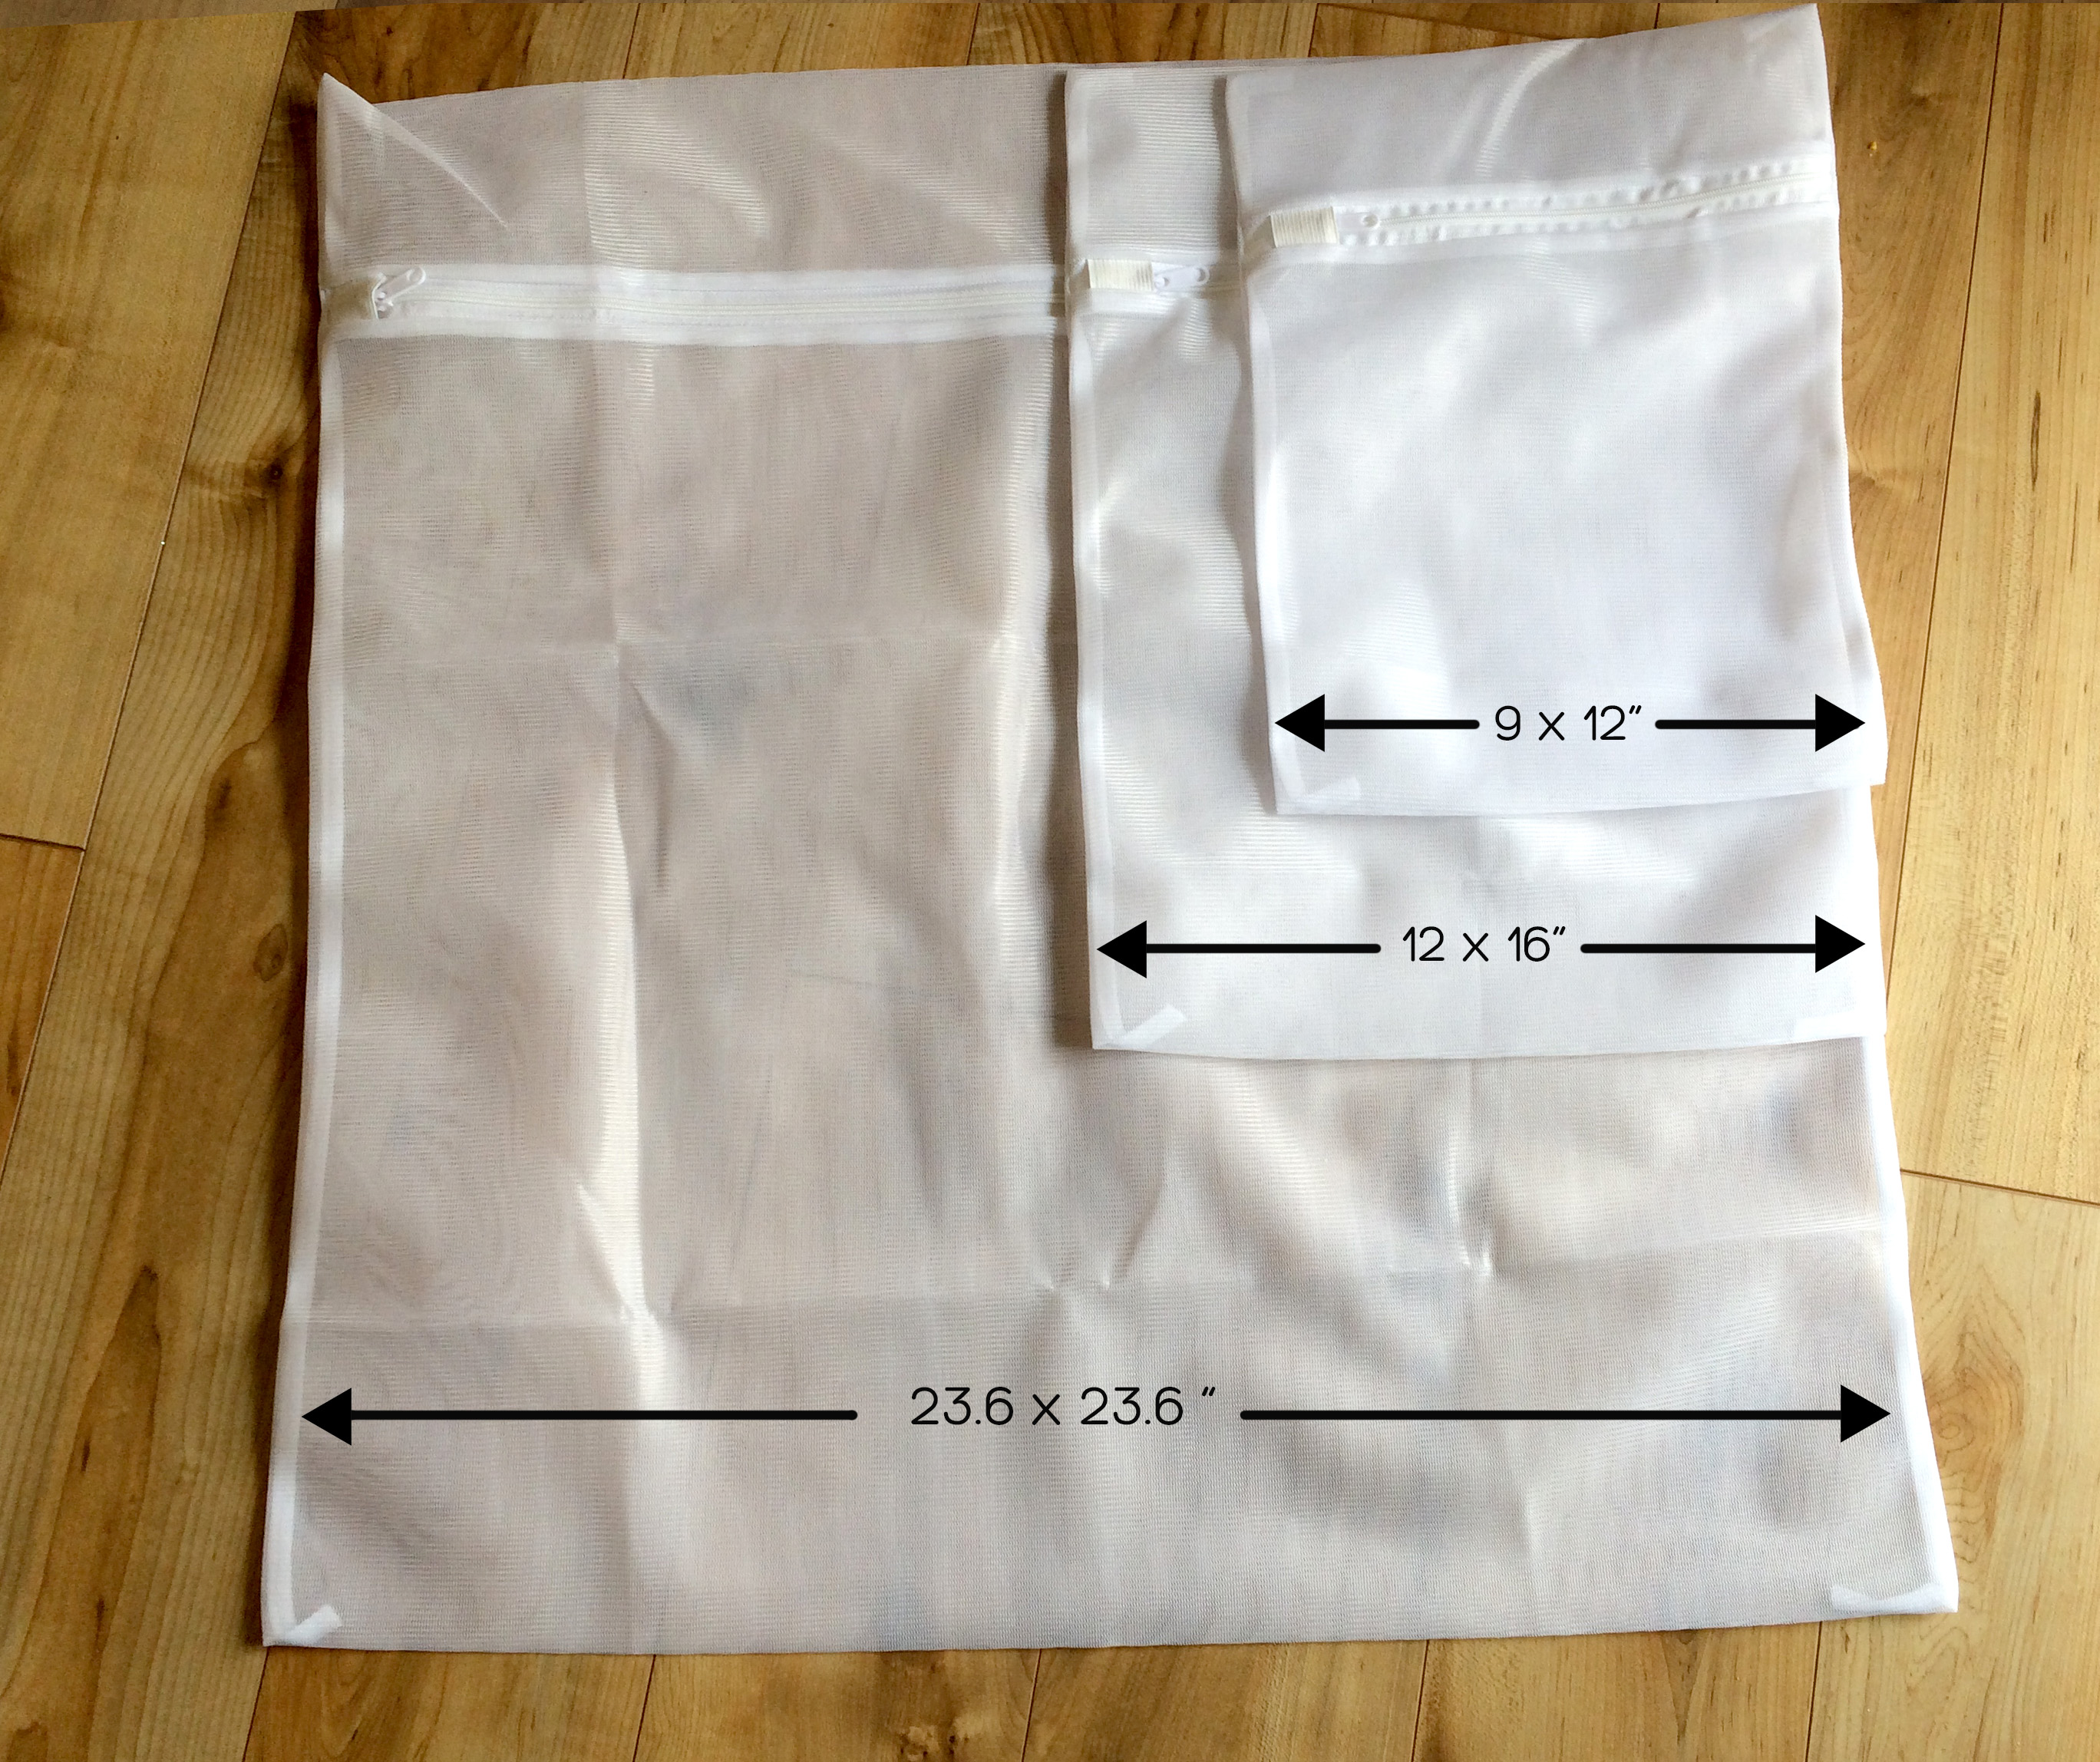 Laundry Bags Measurements